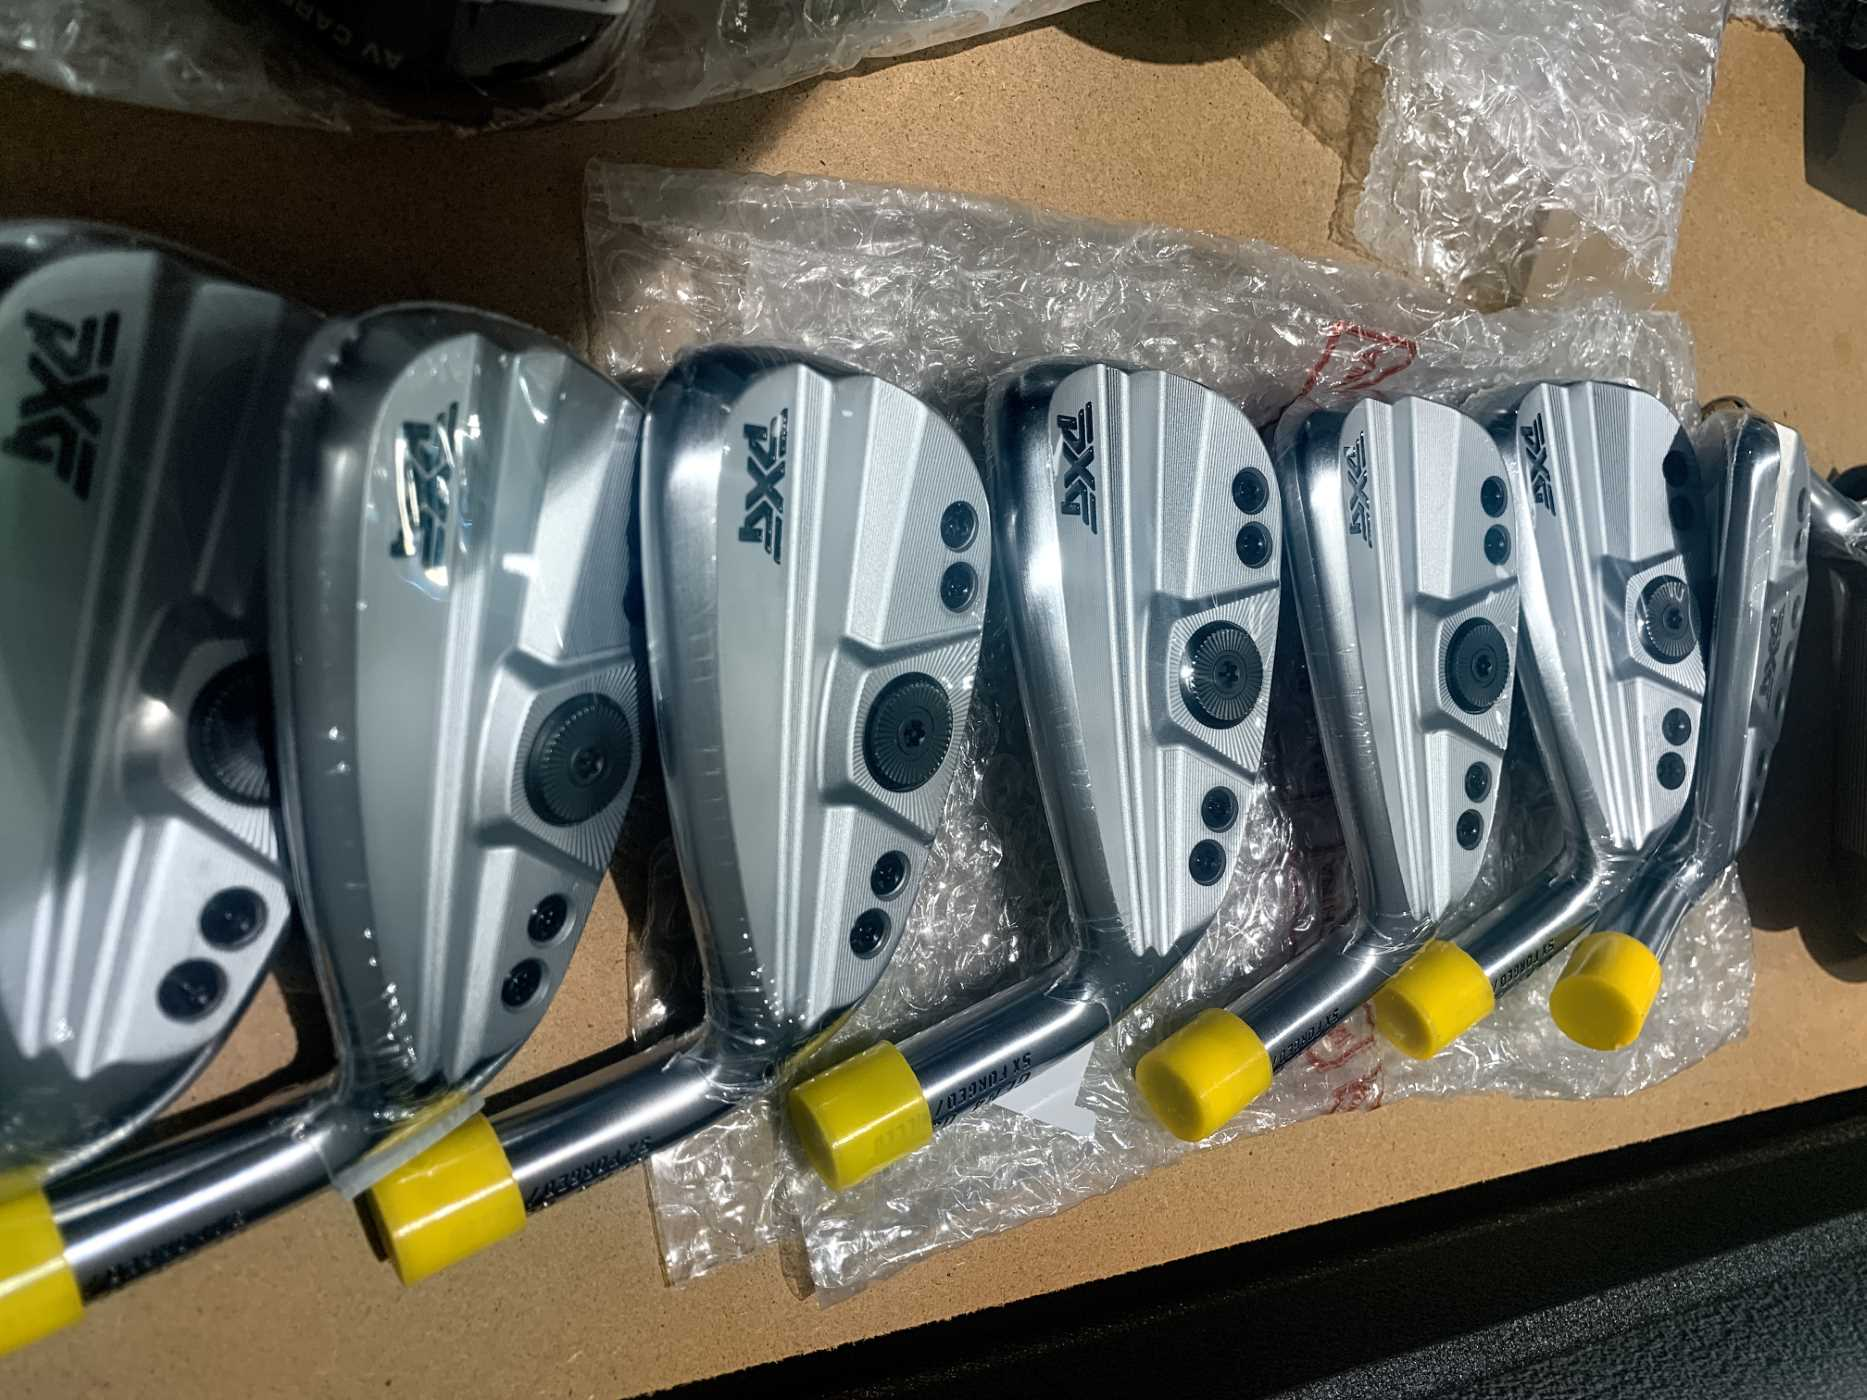 PXG Gen 4 into our fitting stock